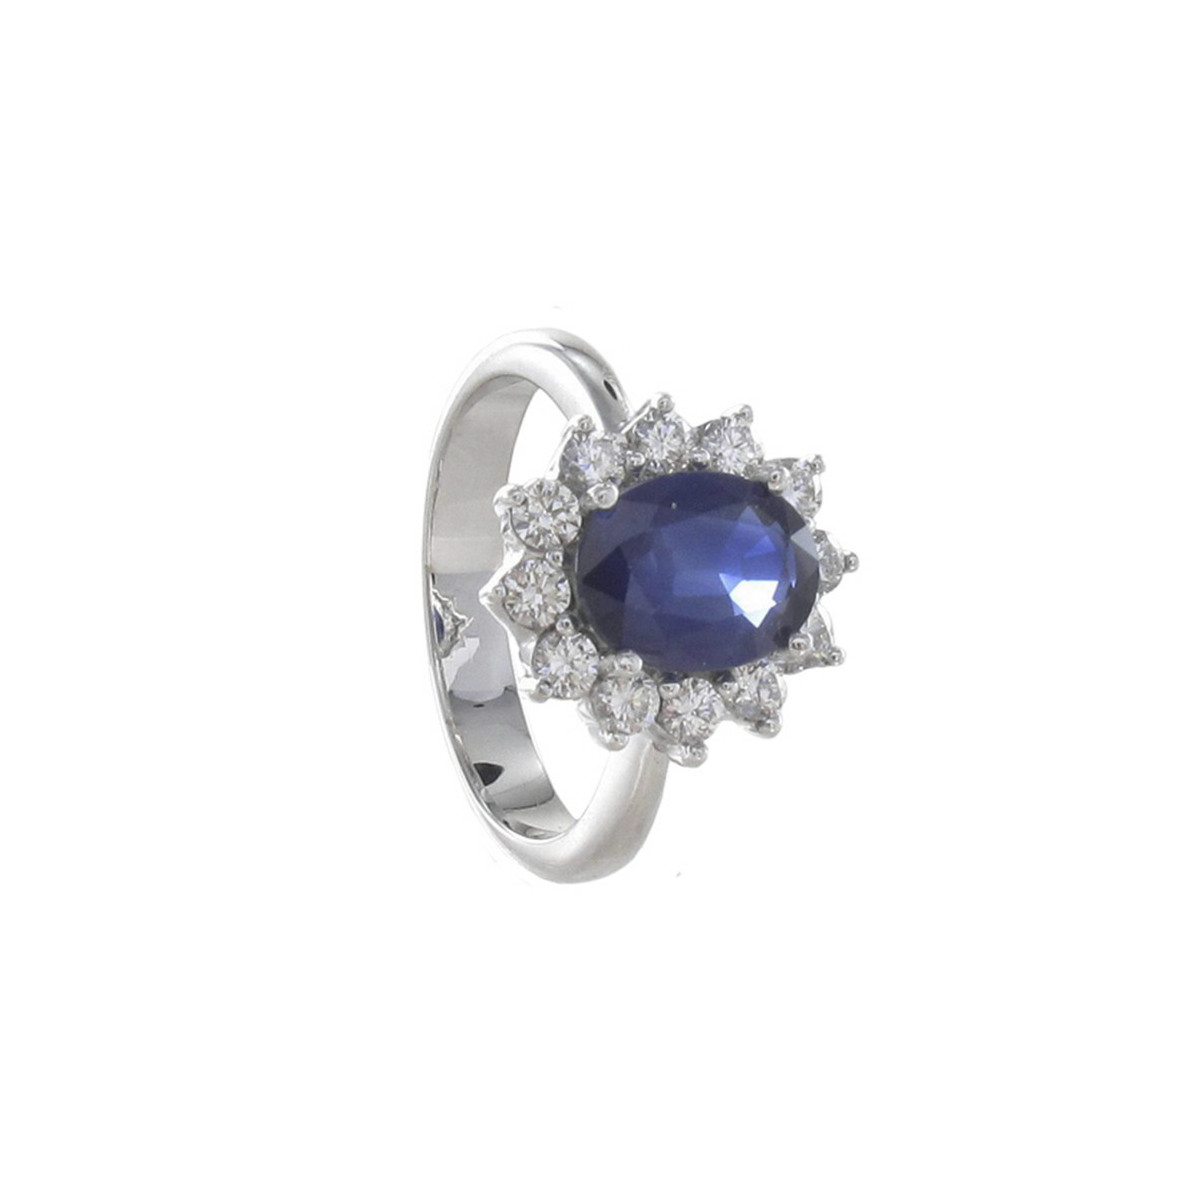 GOLD SAPPHIRE AND12 DIAMONDS RING